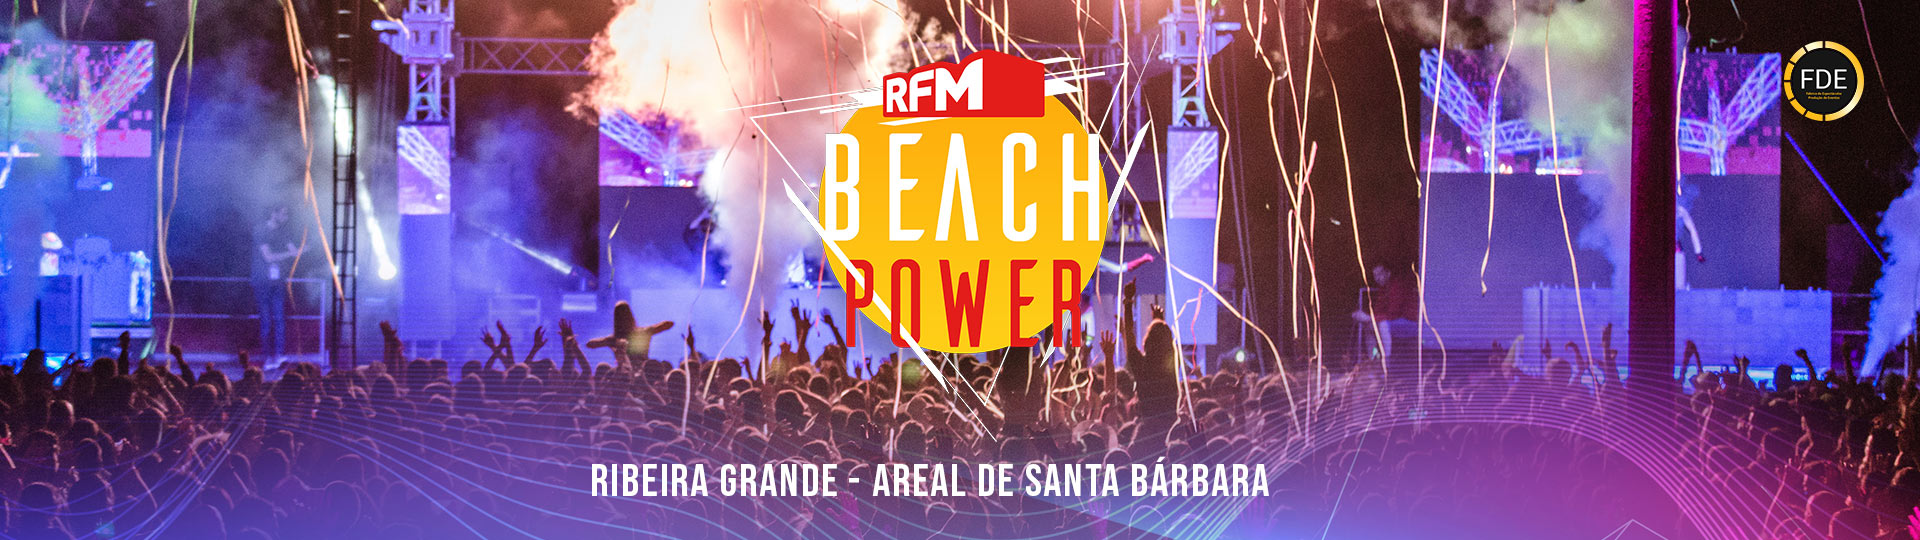 RFM BEACH POWER